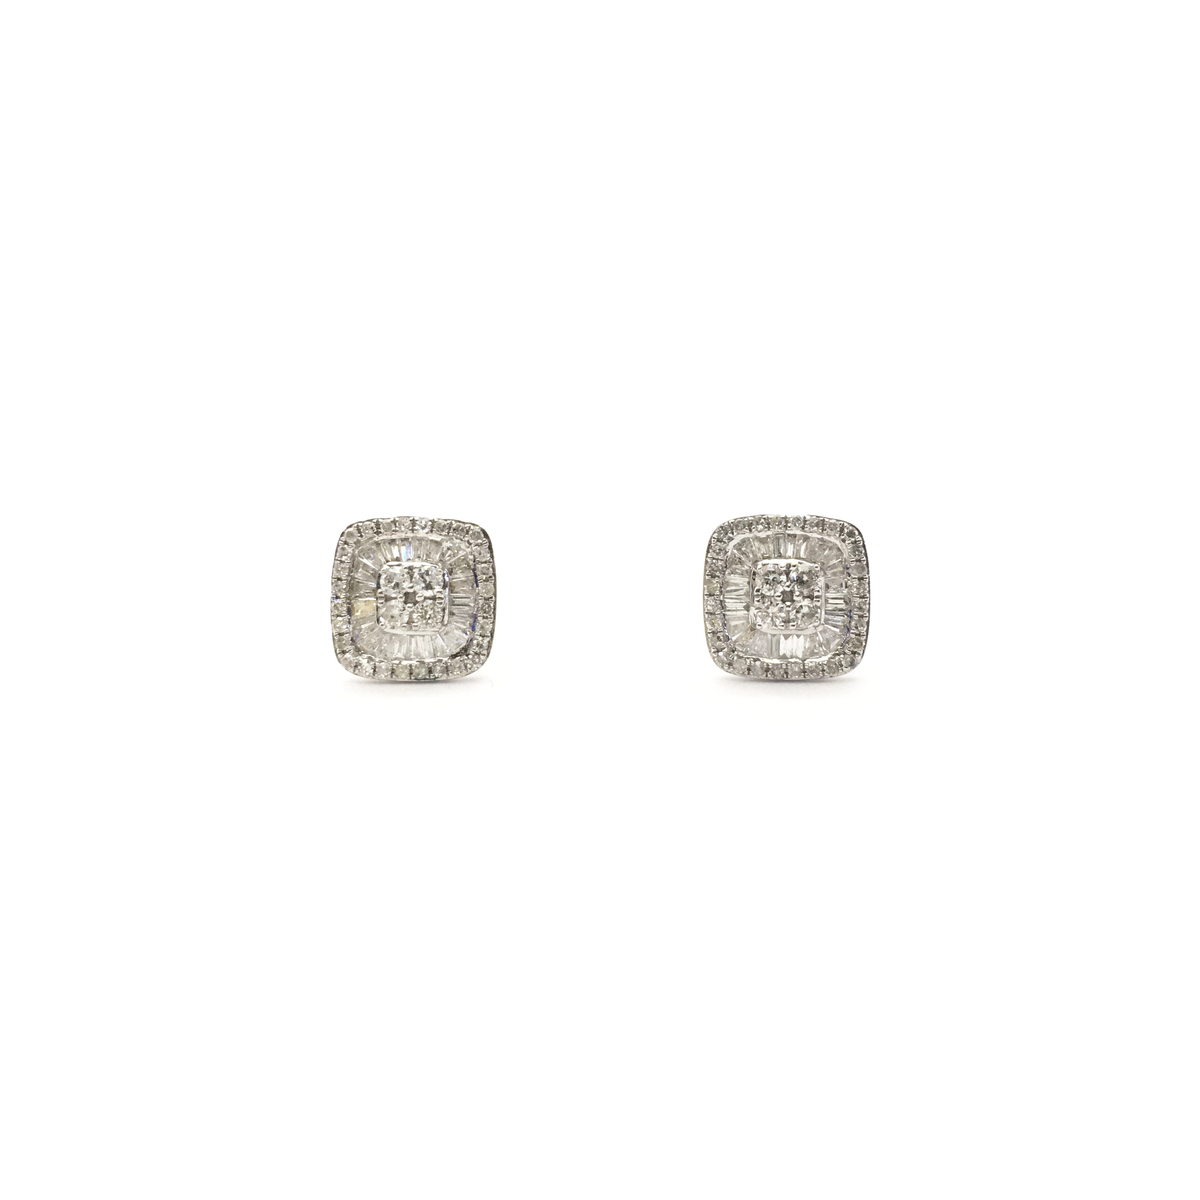 8078d3d8b Baguette and Round Diamond Cluster Stud Earrings (14K) front - Popular  Jewelry - New